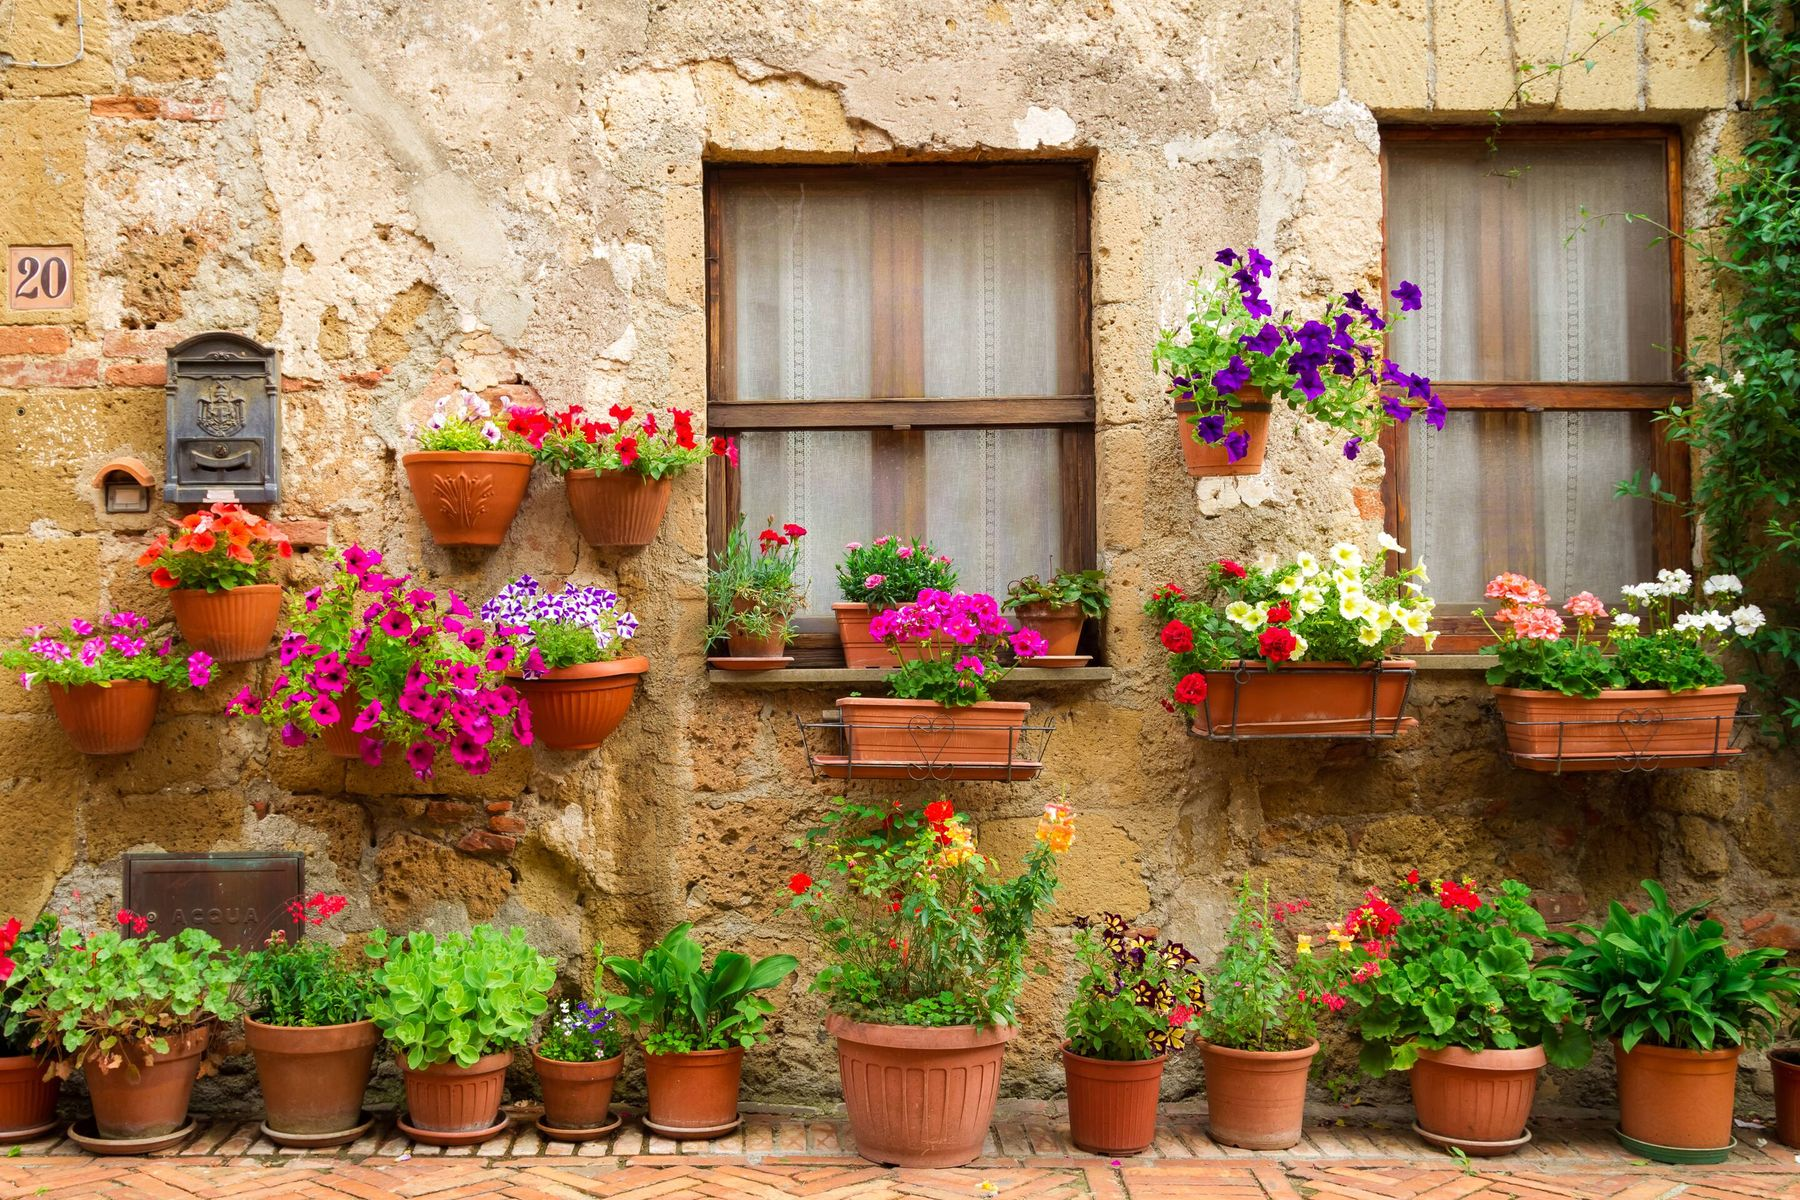 How to Clean Flower Pots | Cleanipedia